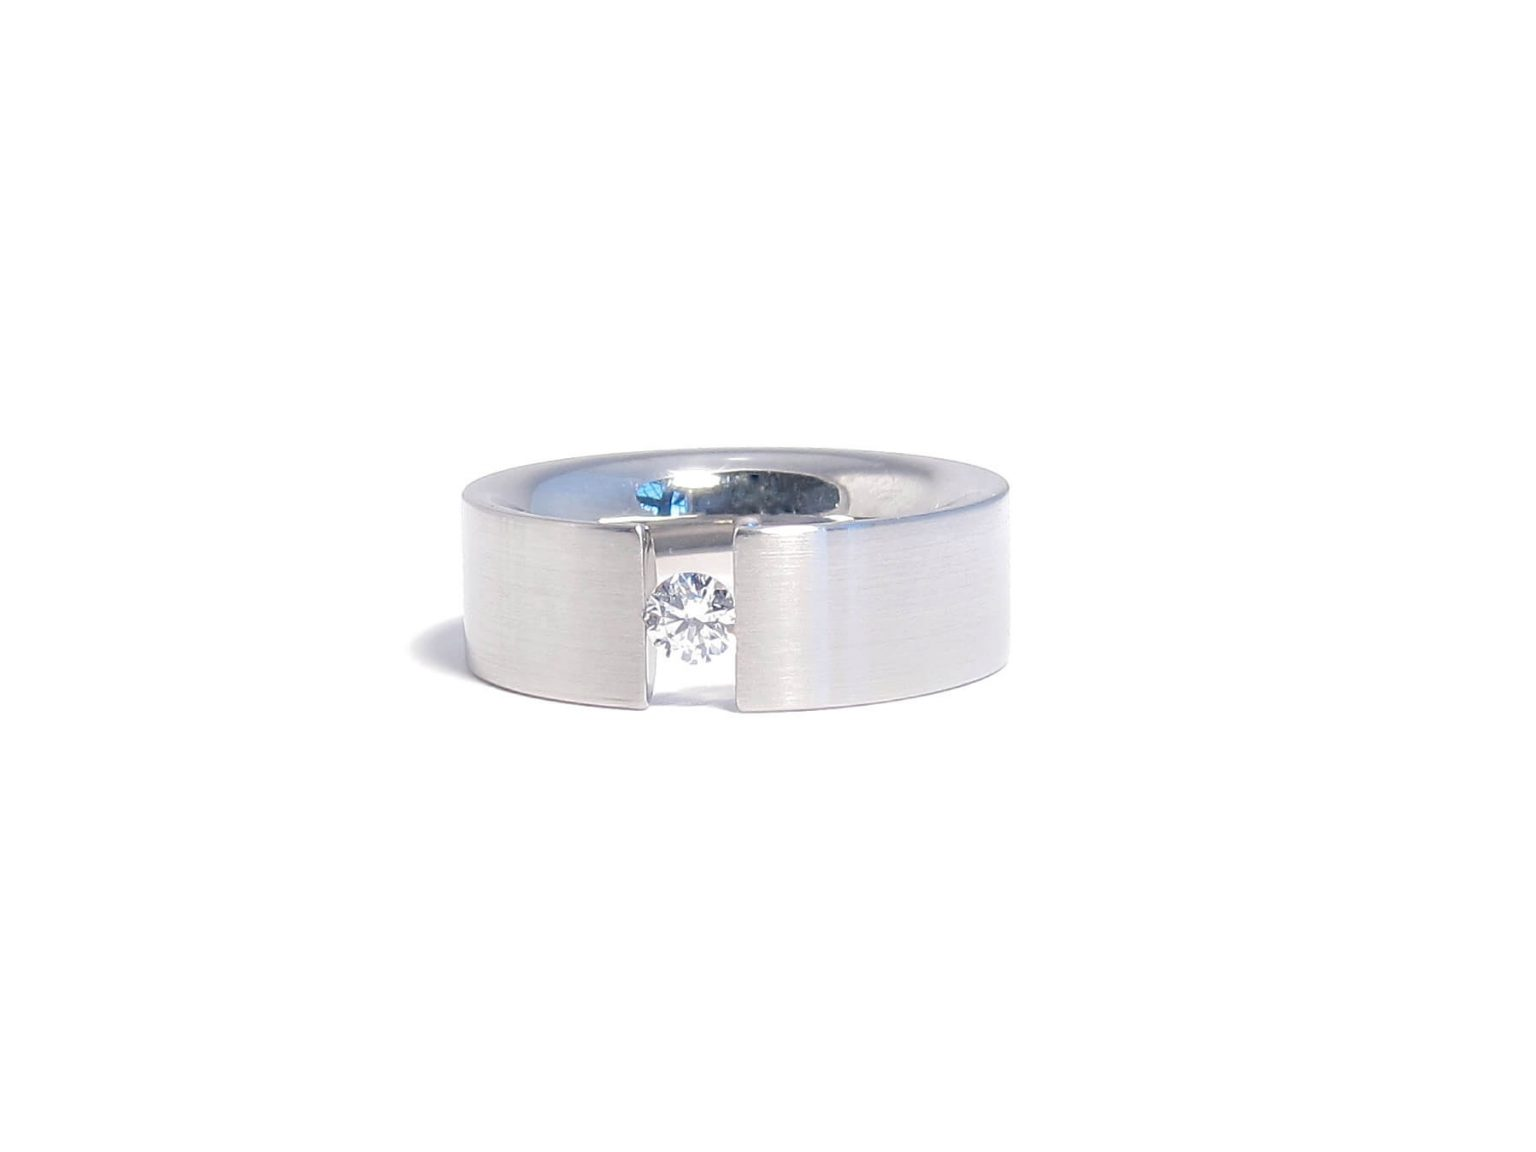 stainless steel and diamond tension ring